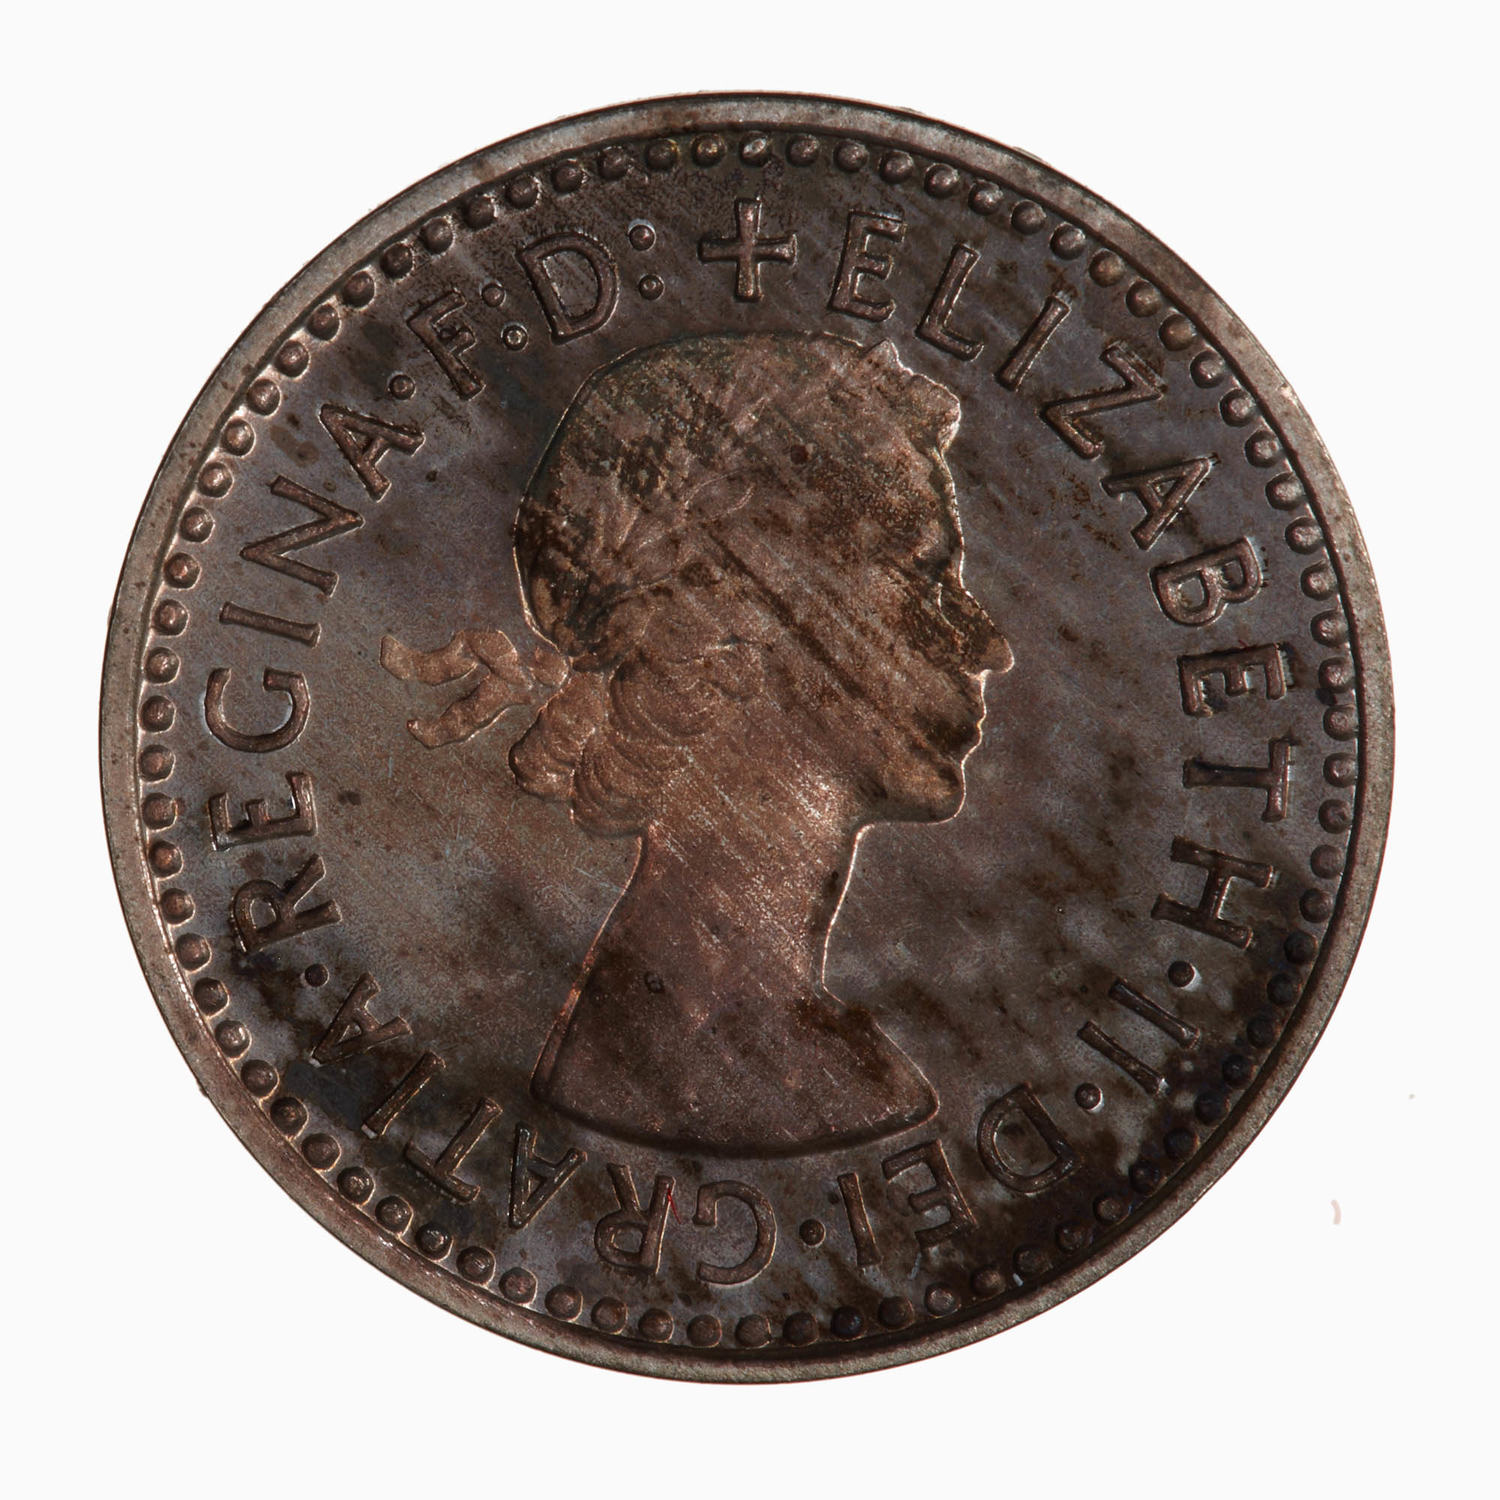 Maundy Twopence (Pre-decimal): Photo Coin - Twopence (Maundy), Elizabeth II, Great Britain, 1957